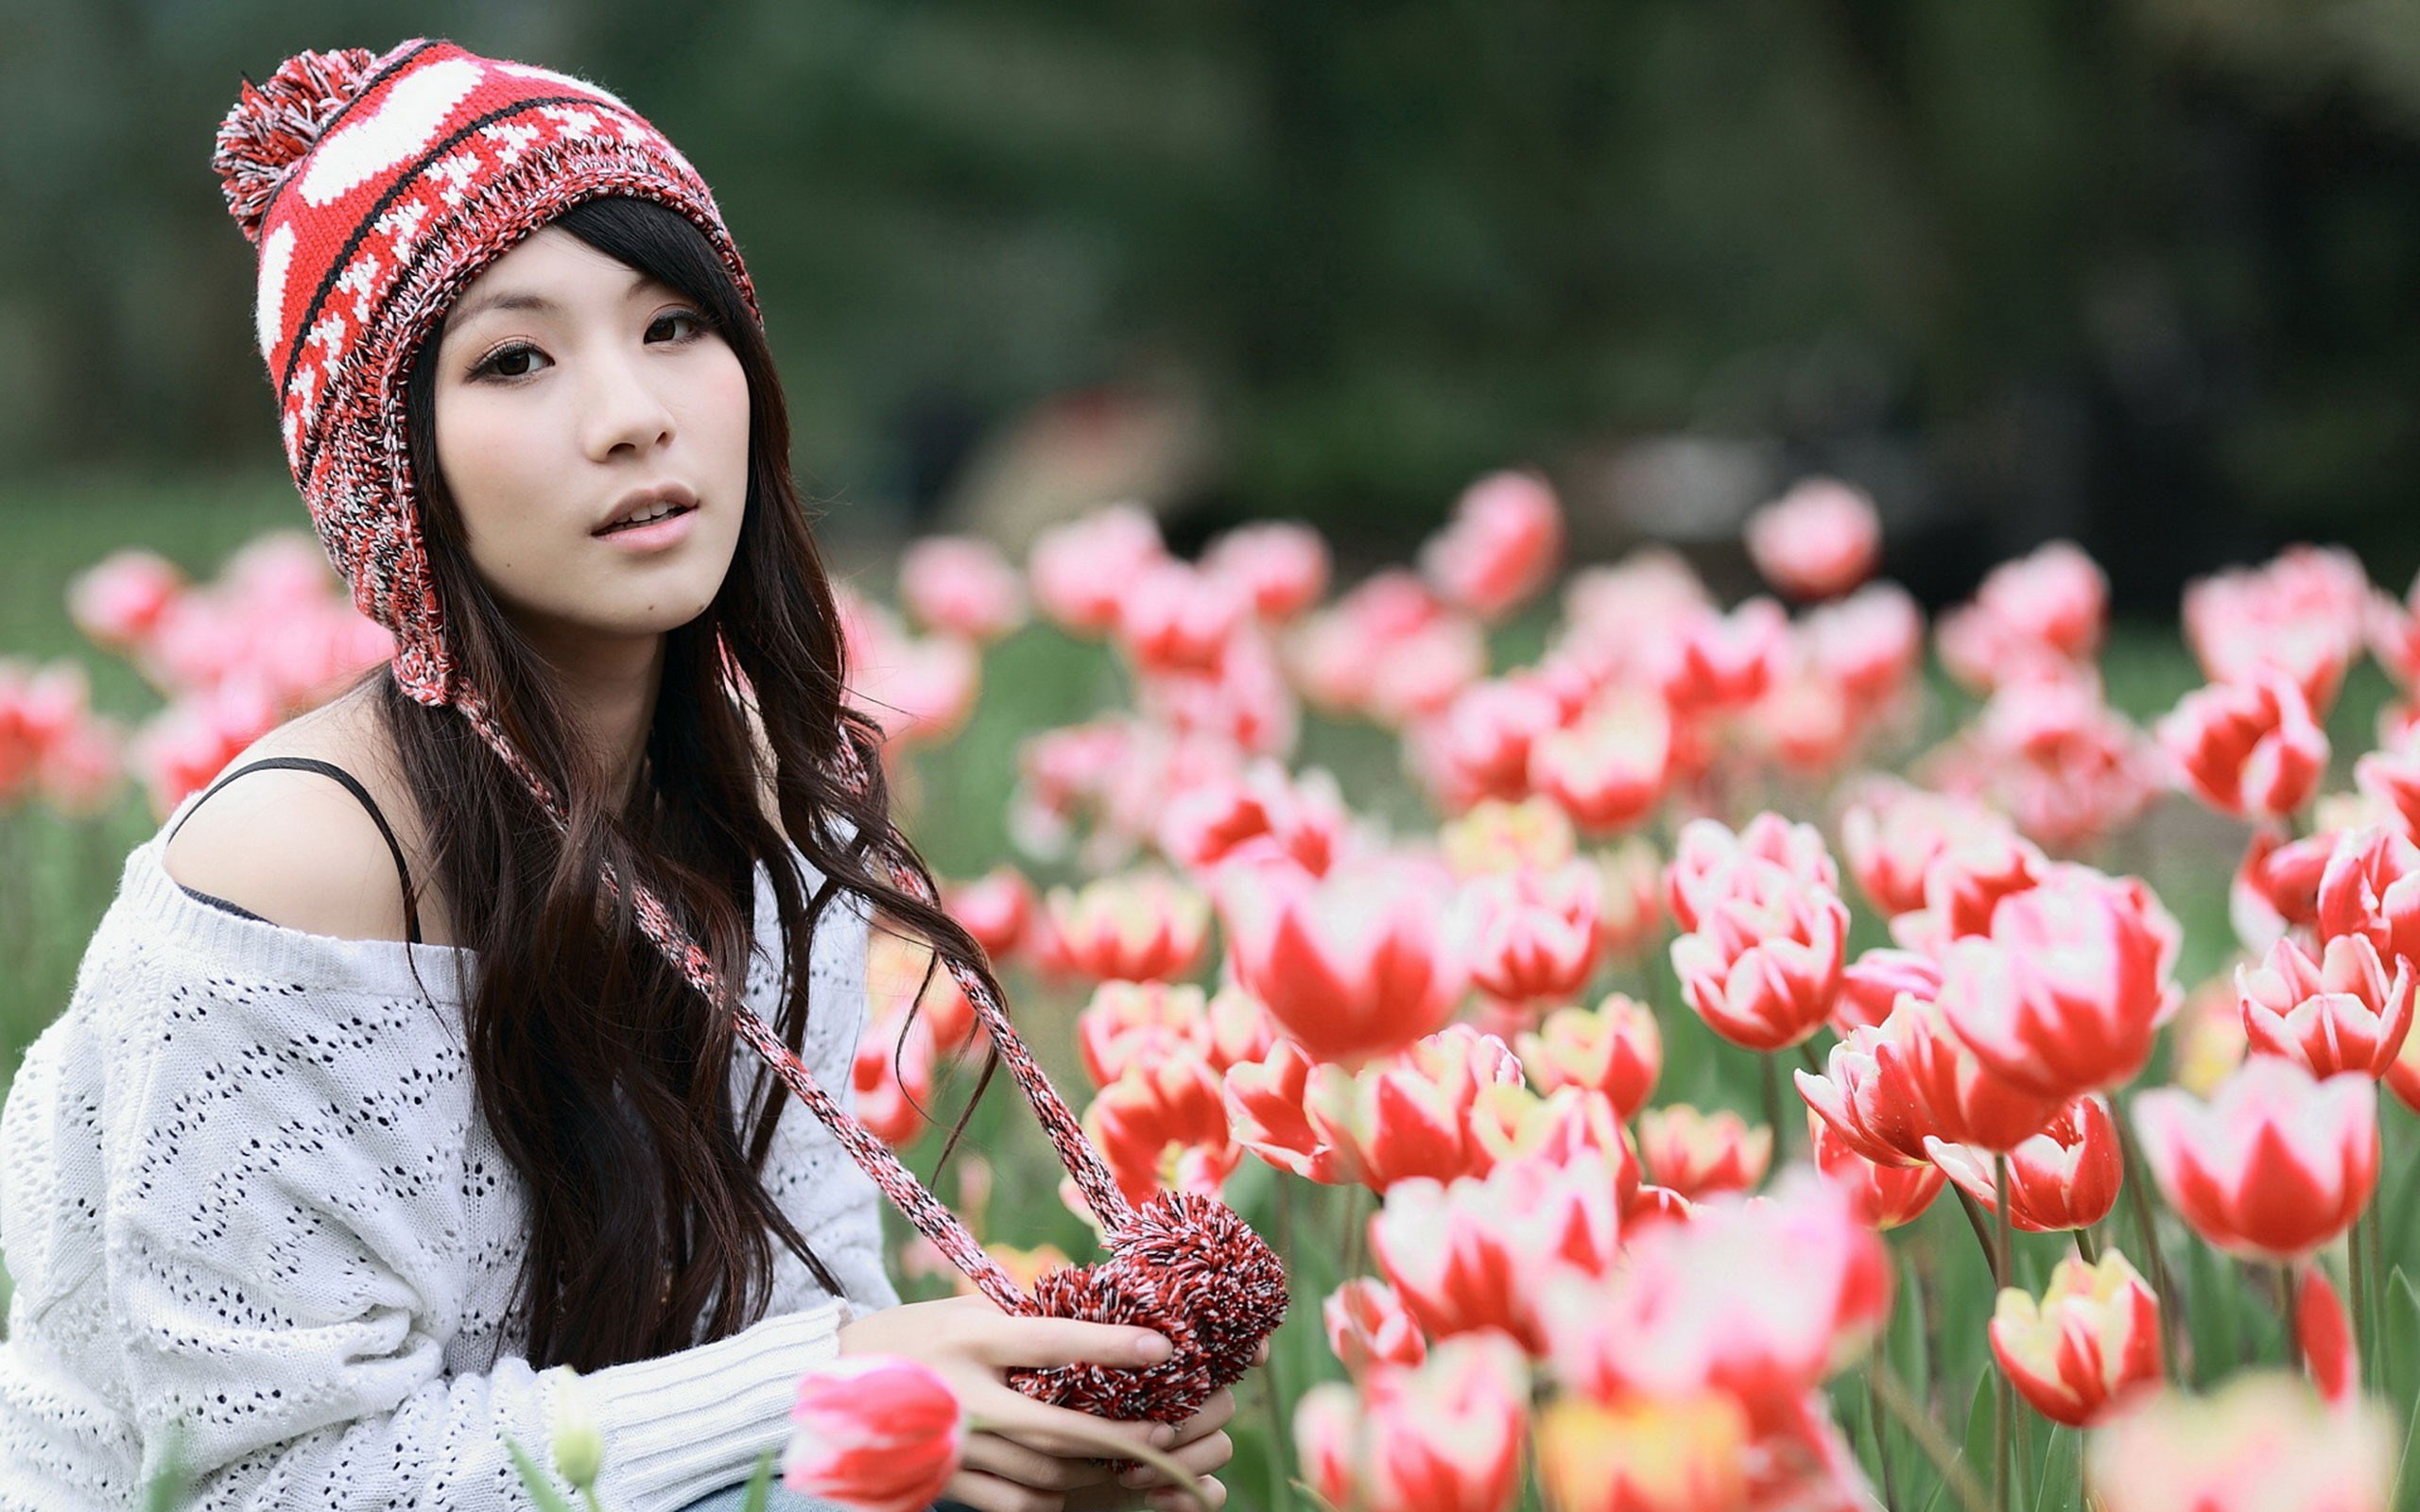 Asian Girl Model Hat Flowers Tulips HD Wallpaper